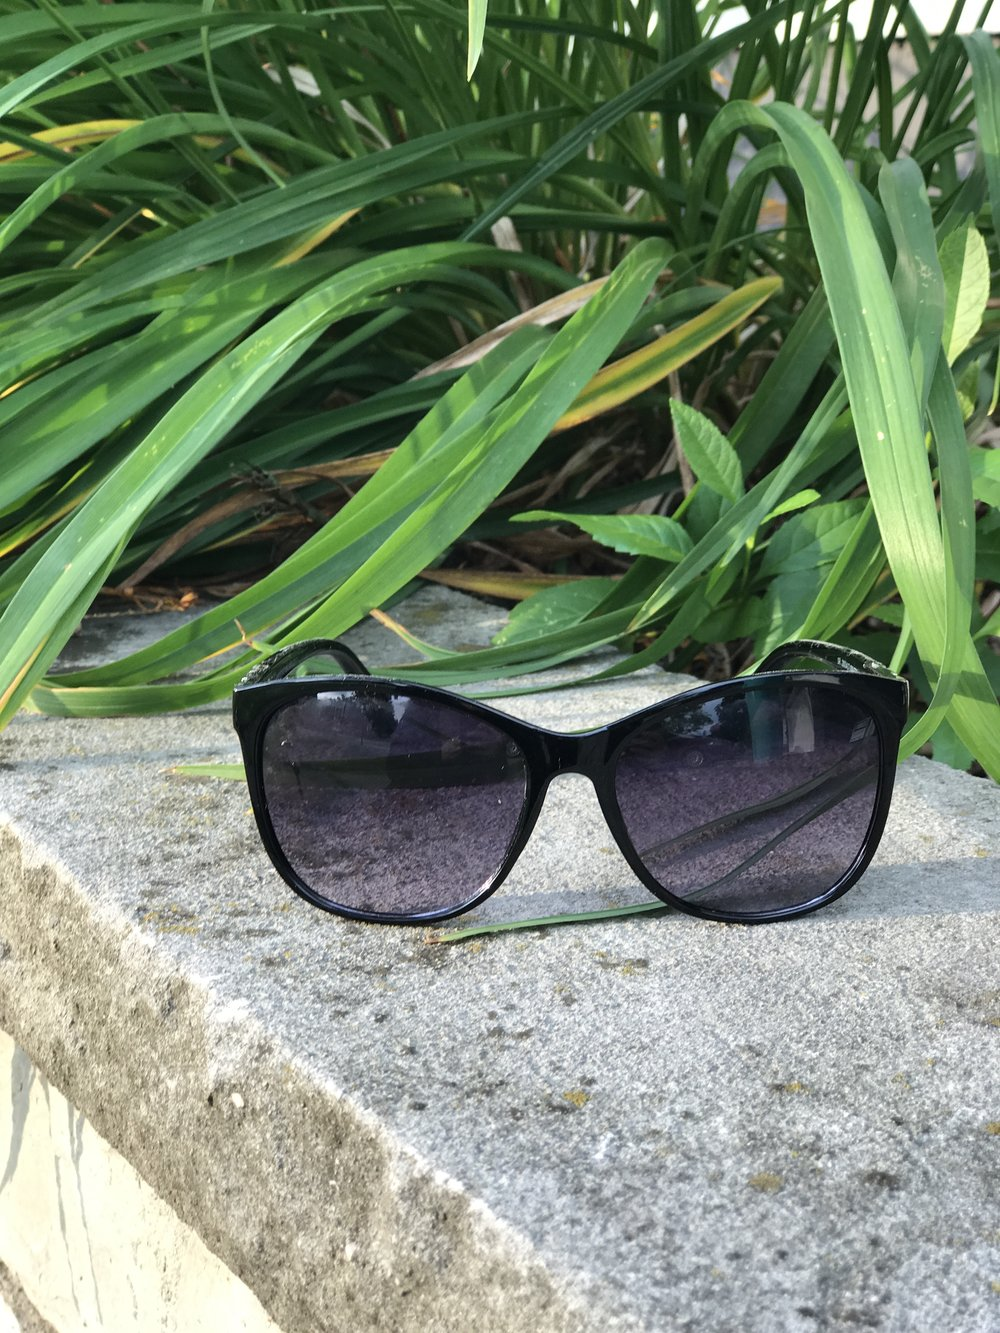 Sunglasses by front flowers